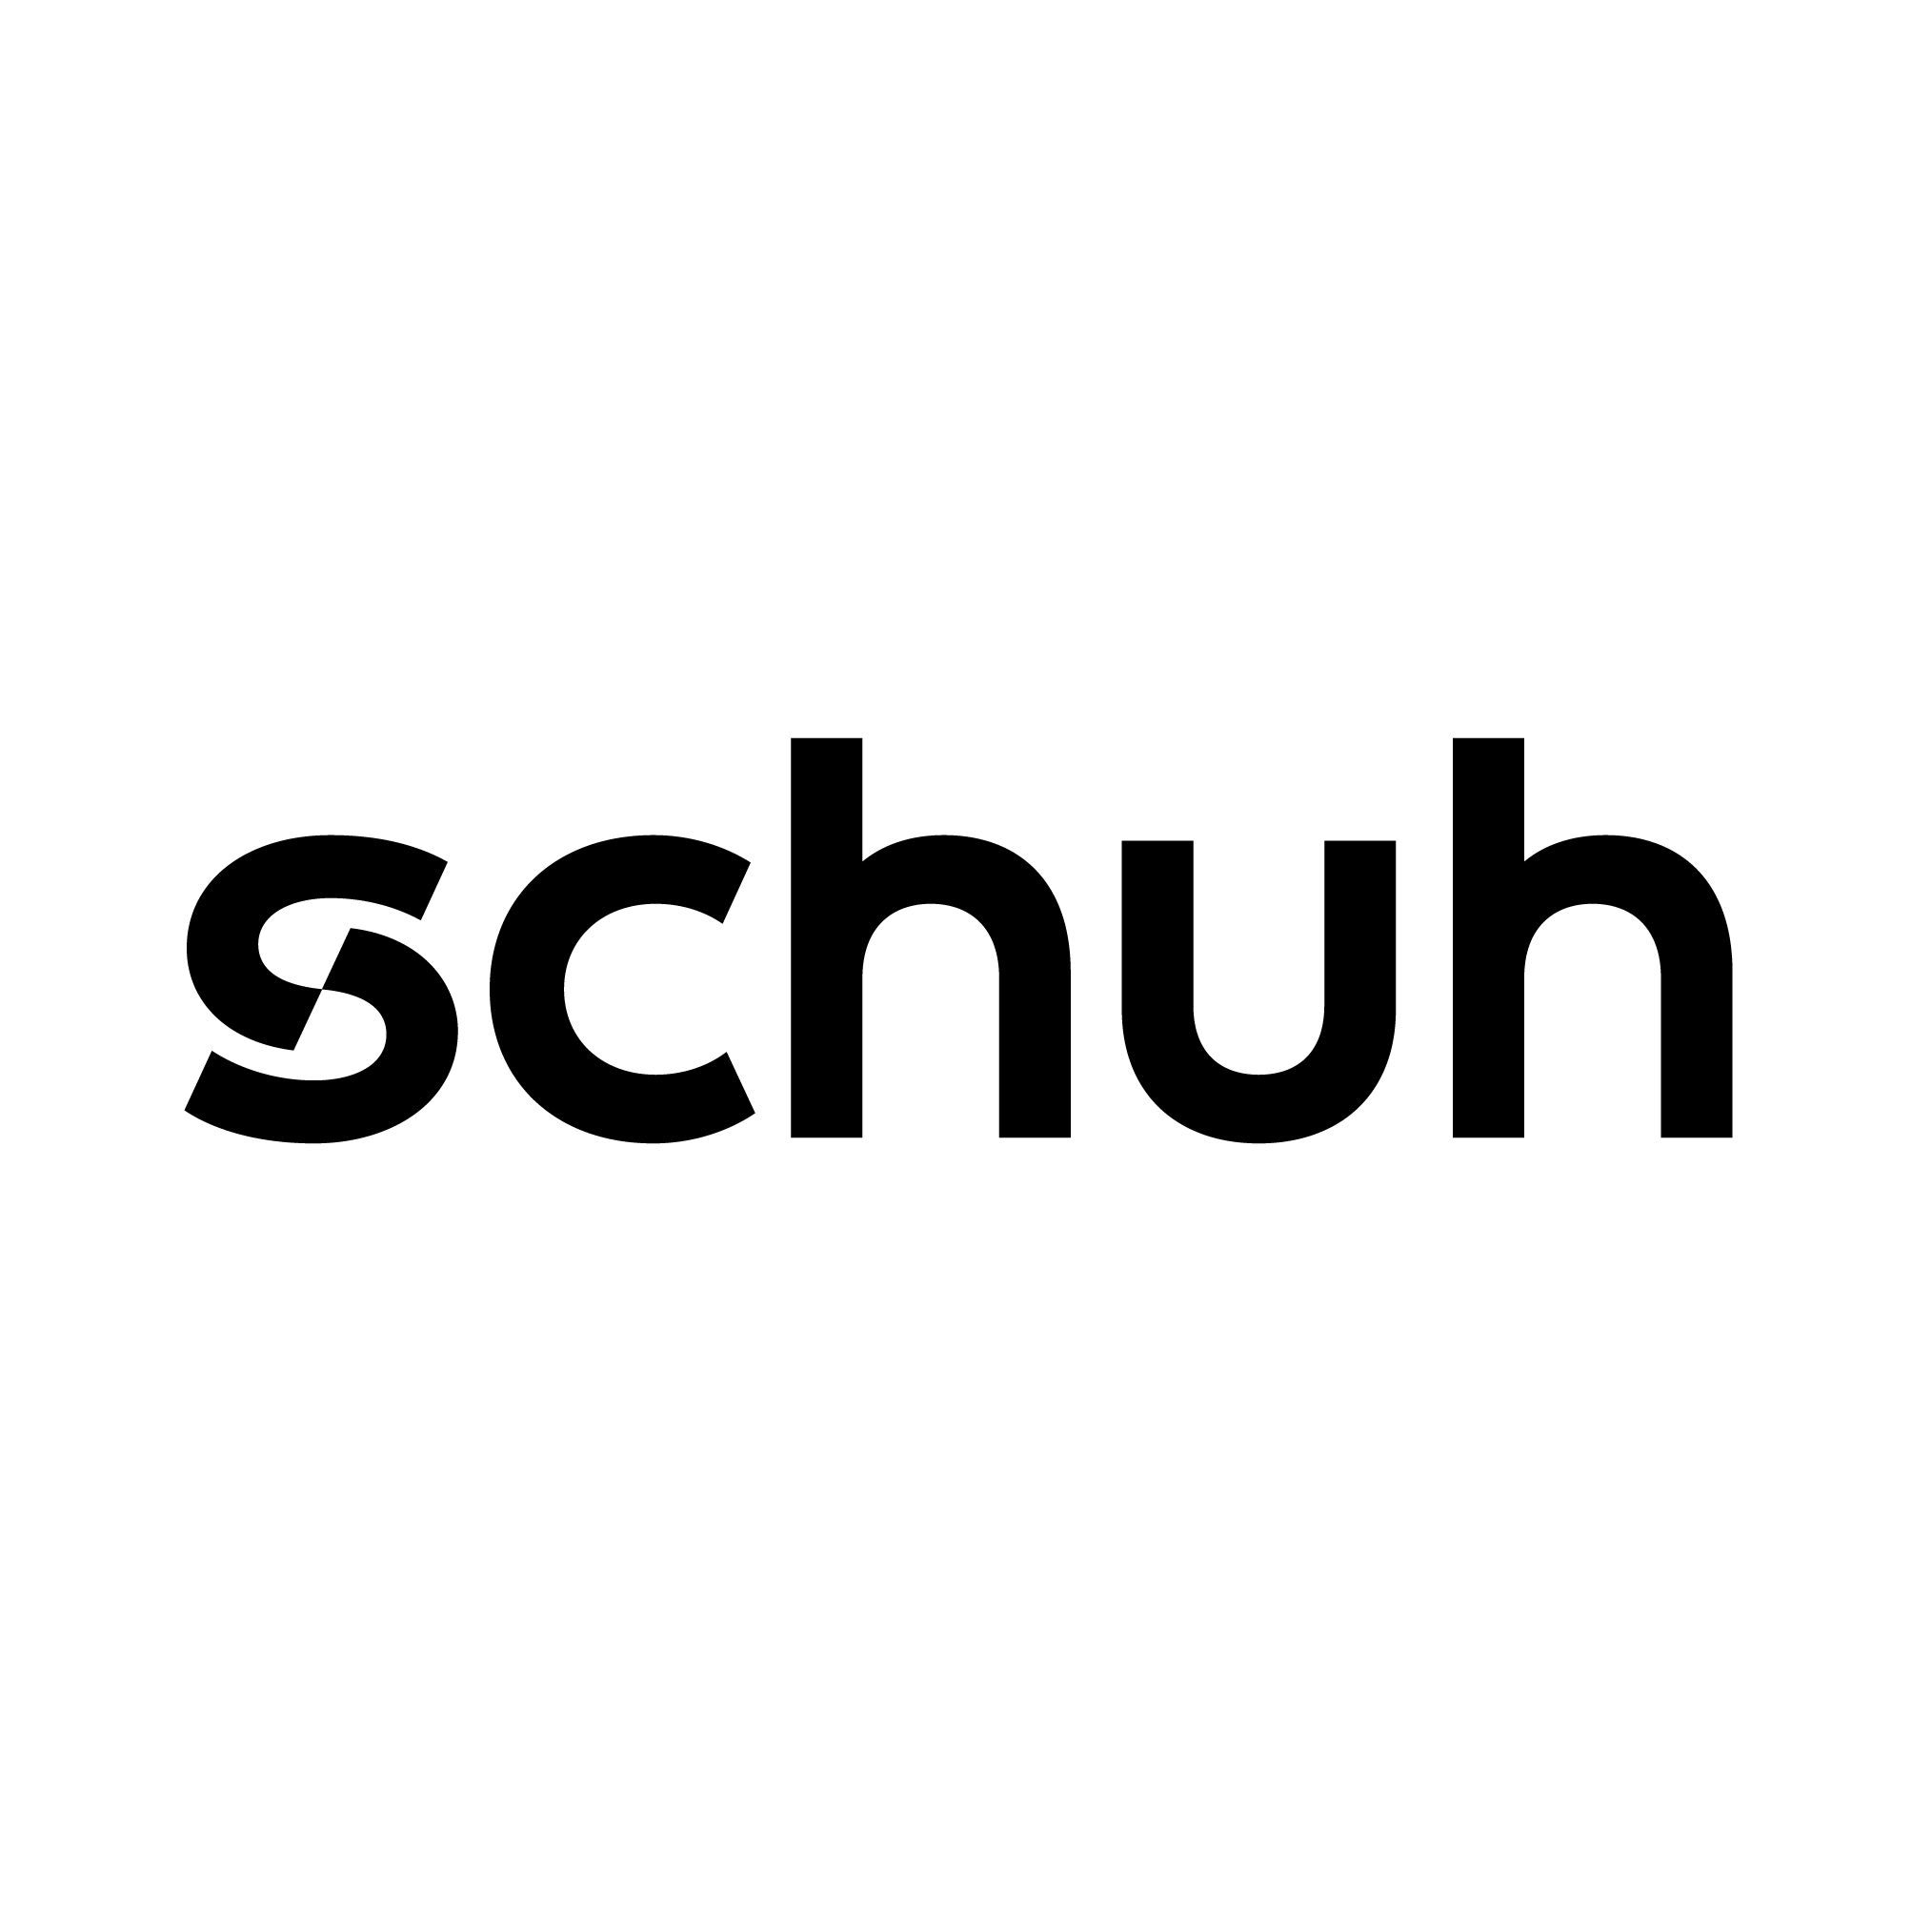 schuh - Birmingham, West Midlands B24 9FP - 01212 965324 | ShowMeLocal.com